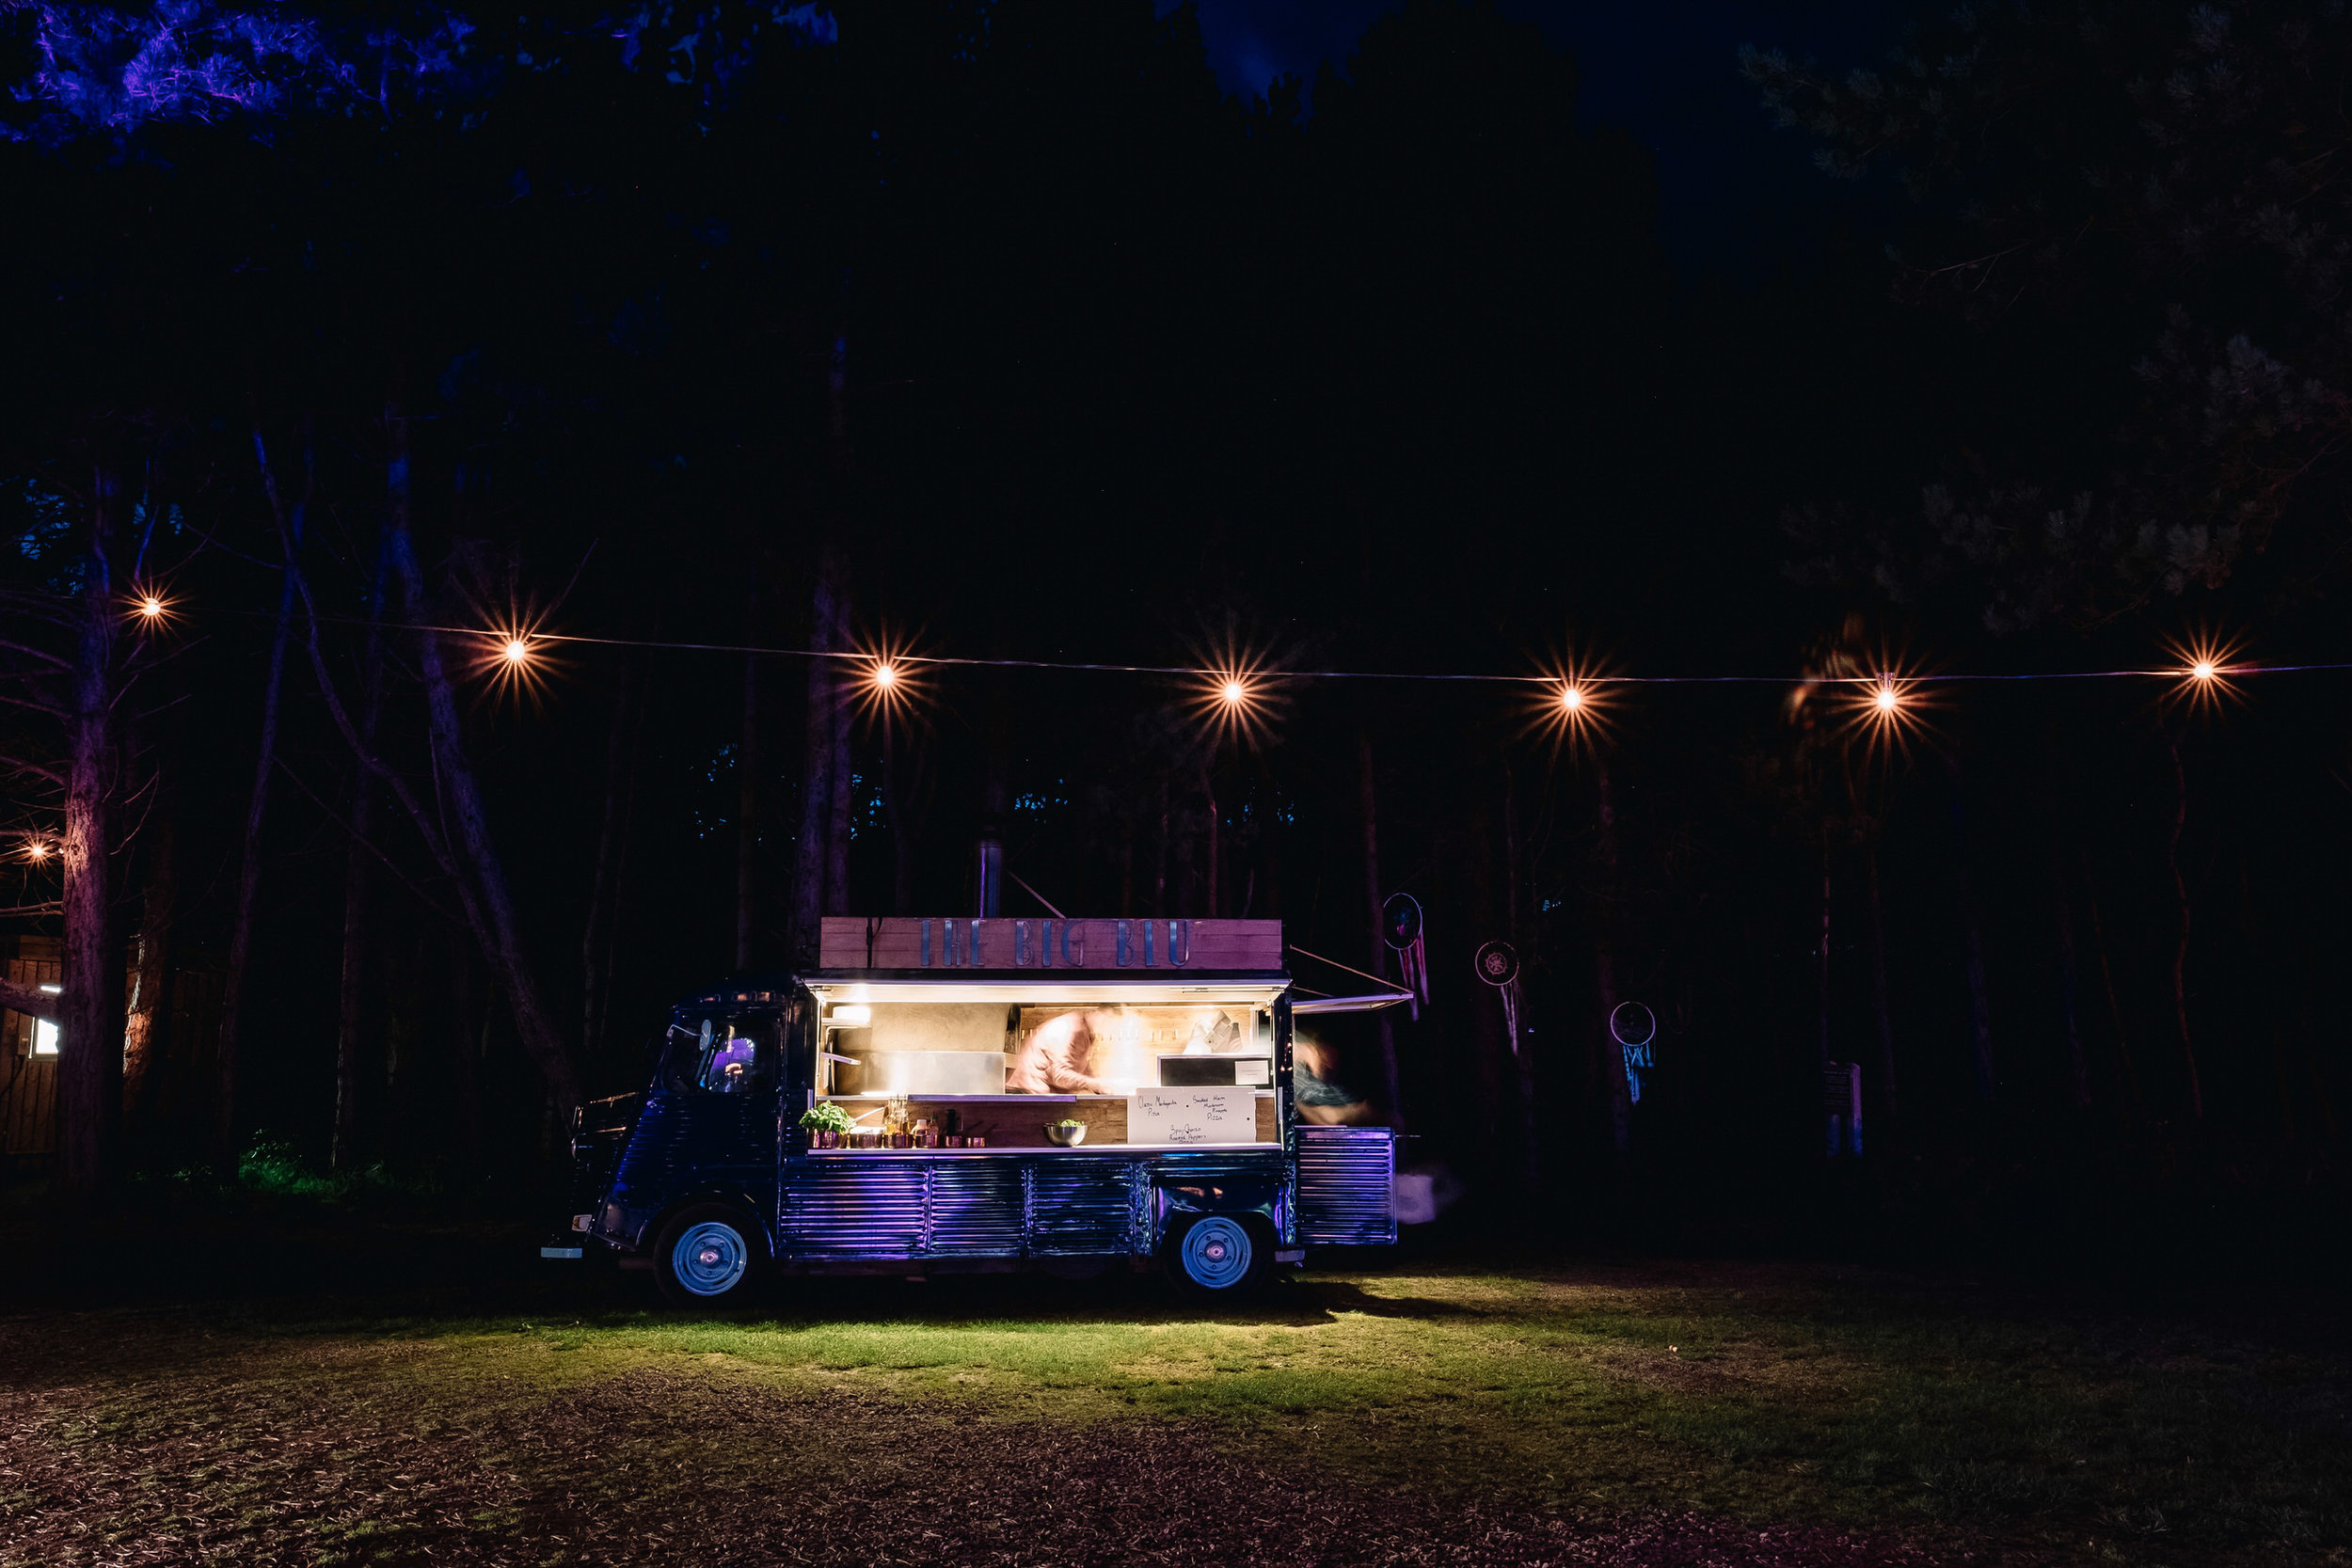 063-Ravensheugh-Log-Cabin-Wedding-pizza-van.jpg